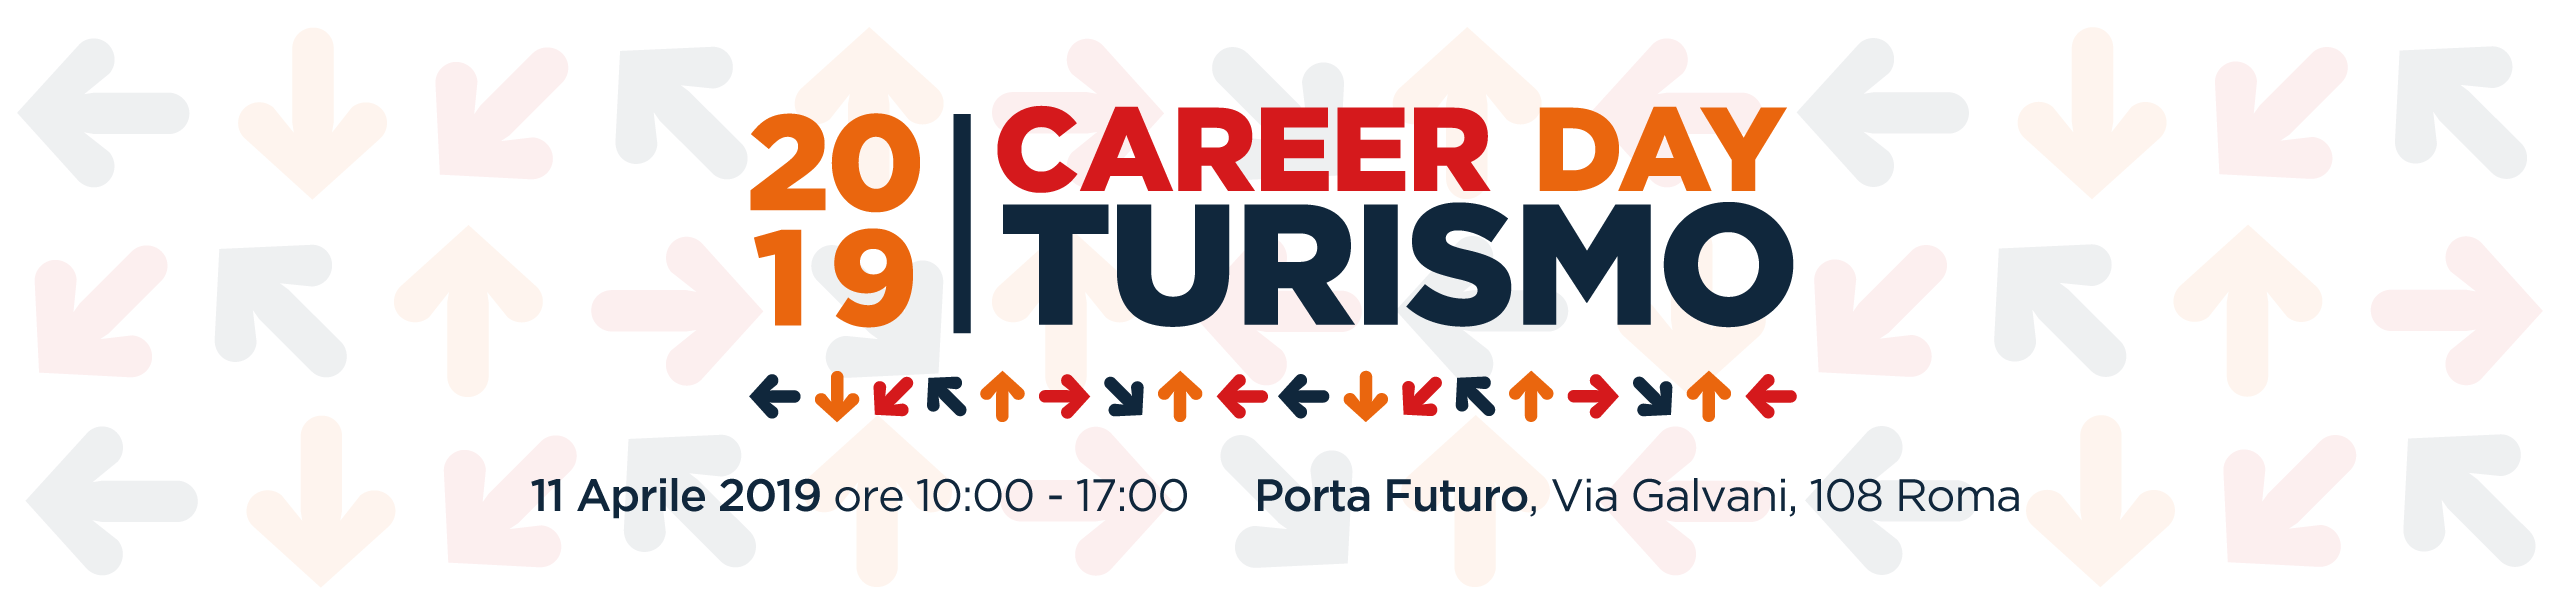 Career-Day-2019-Principale-Sito